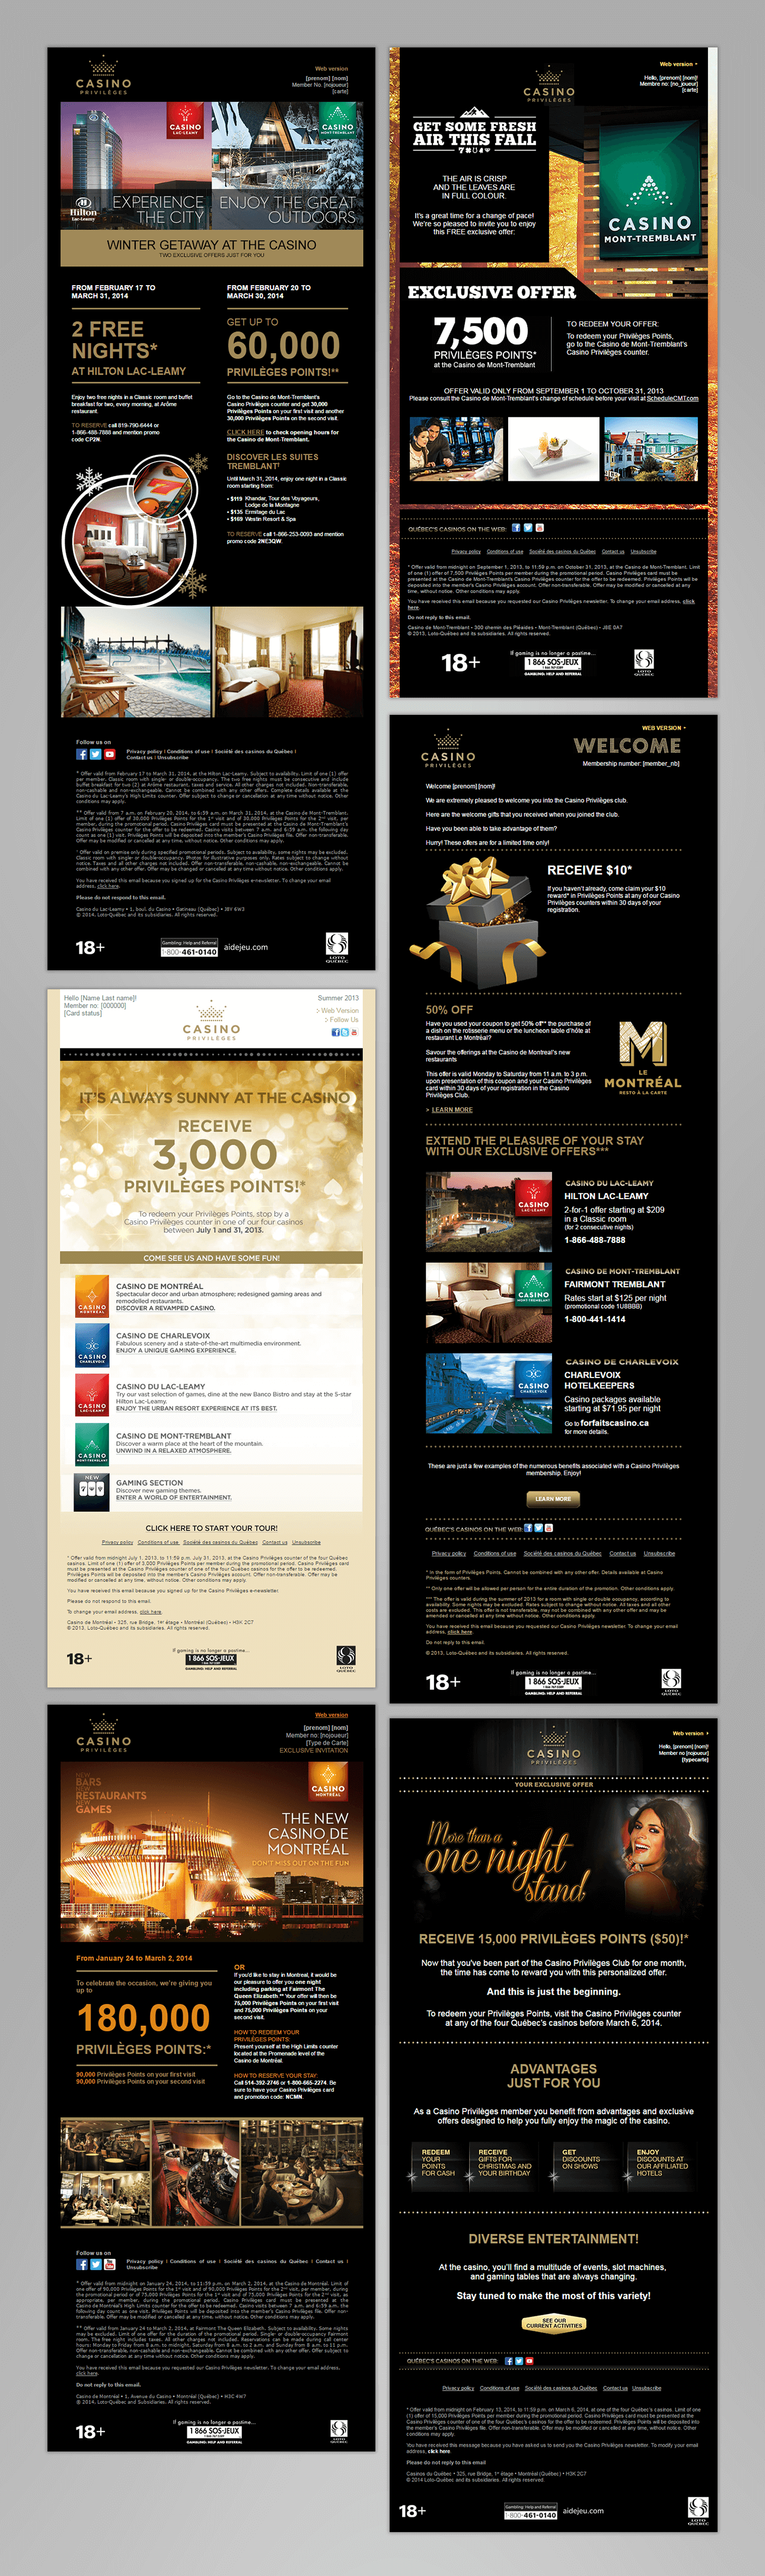 Screen captures of Casinos du Québec's promotional emails